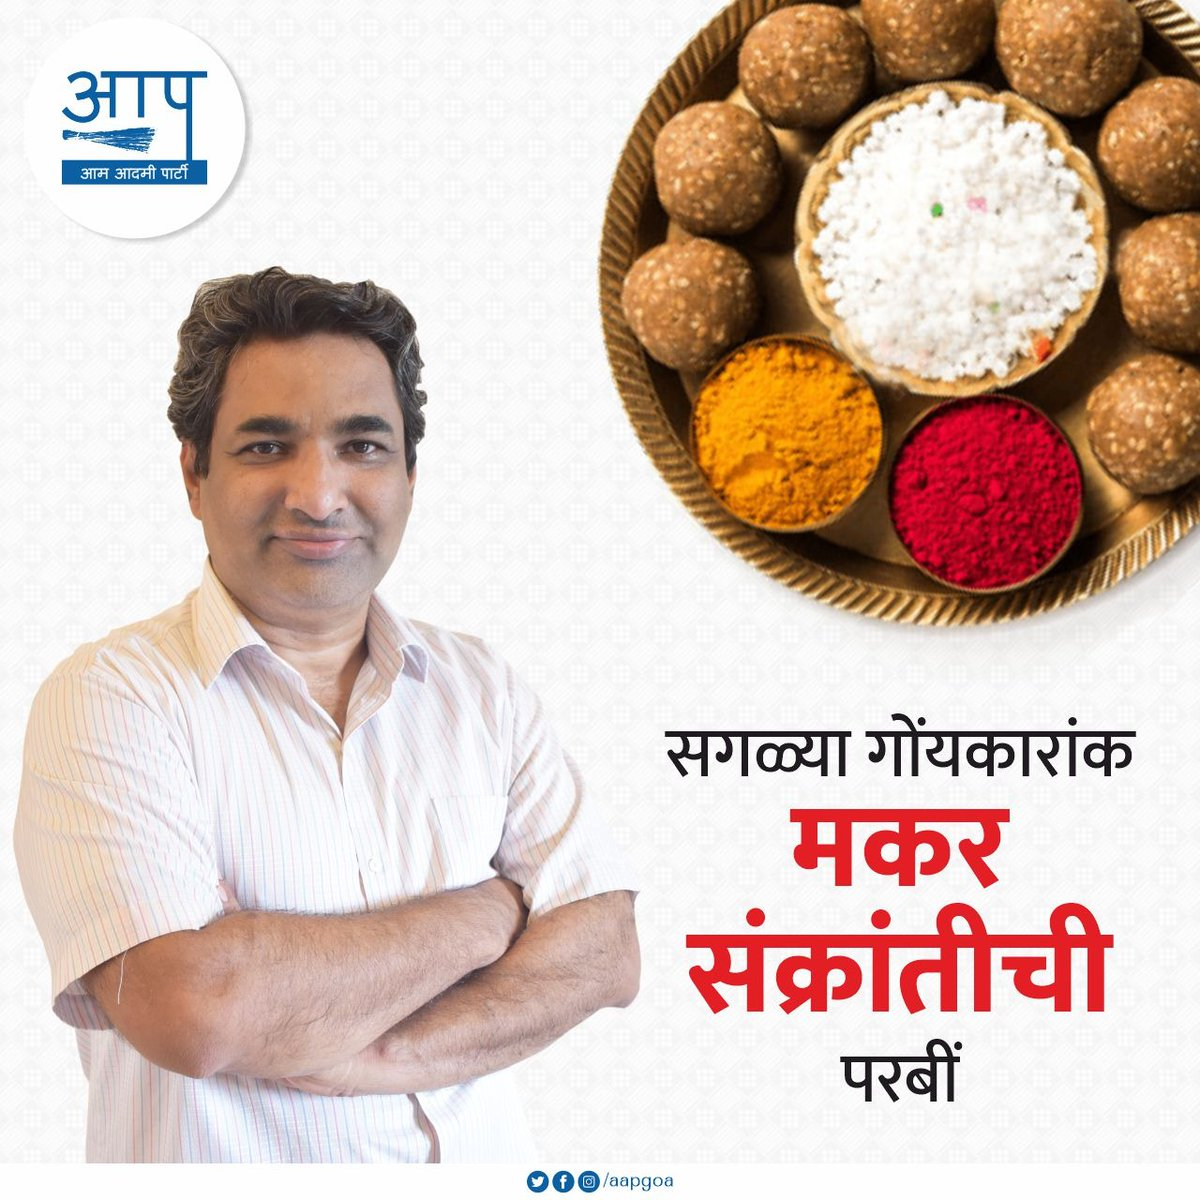 Greetings to you on the auspicious occassiom of Makar Sakranti.